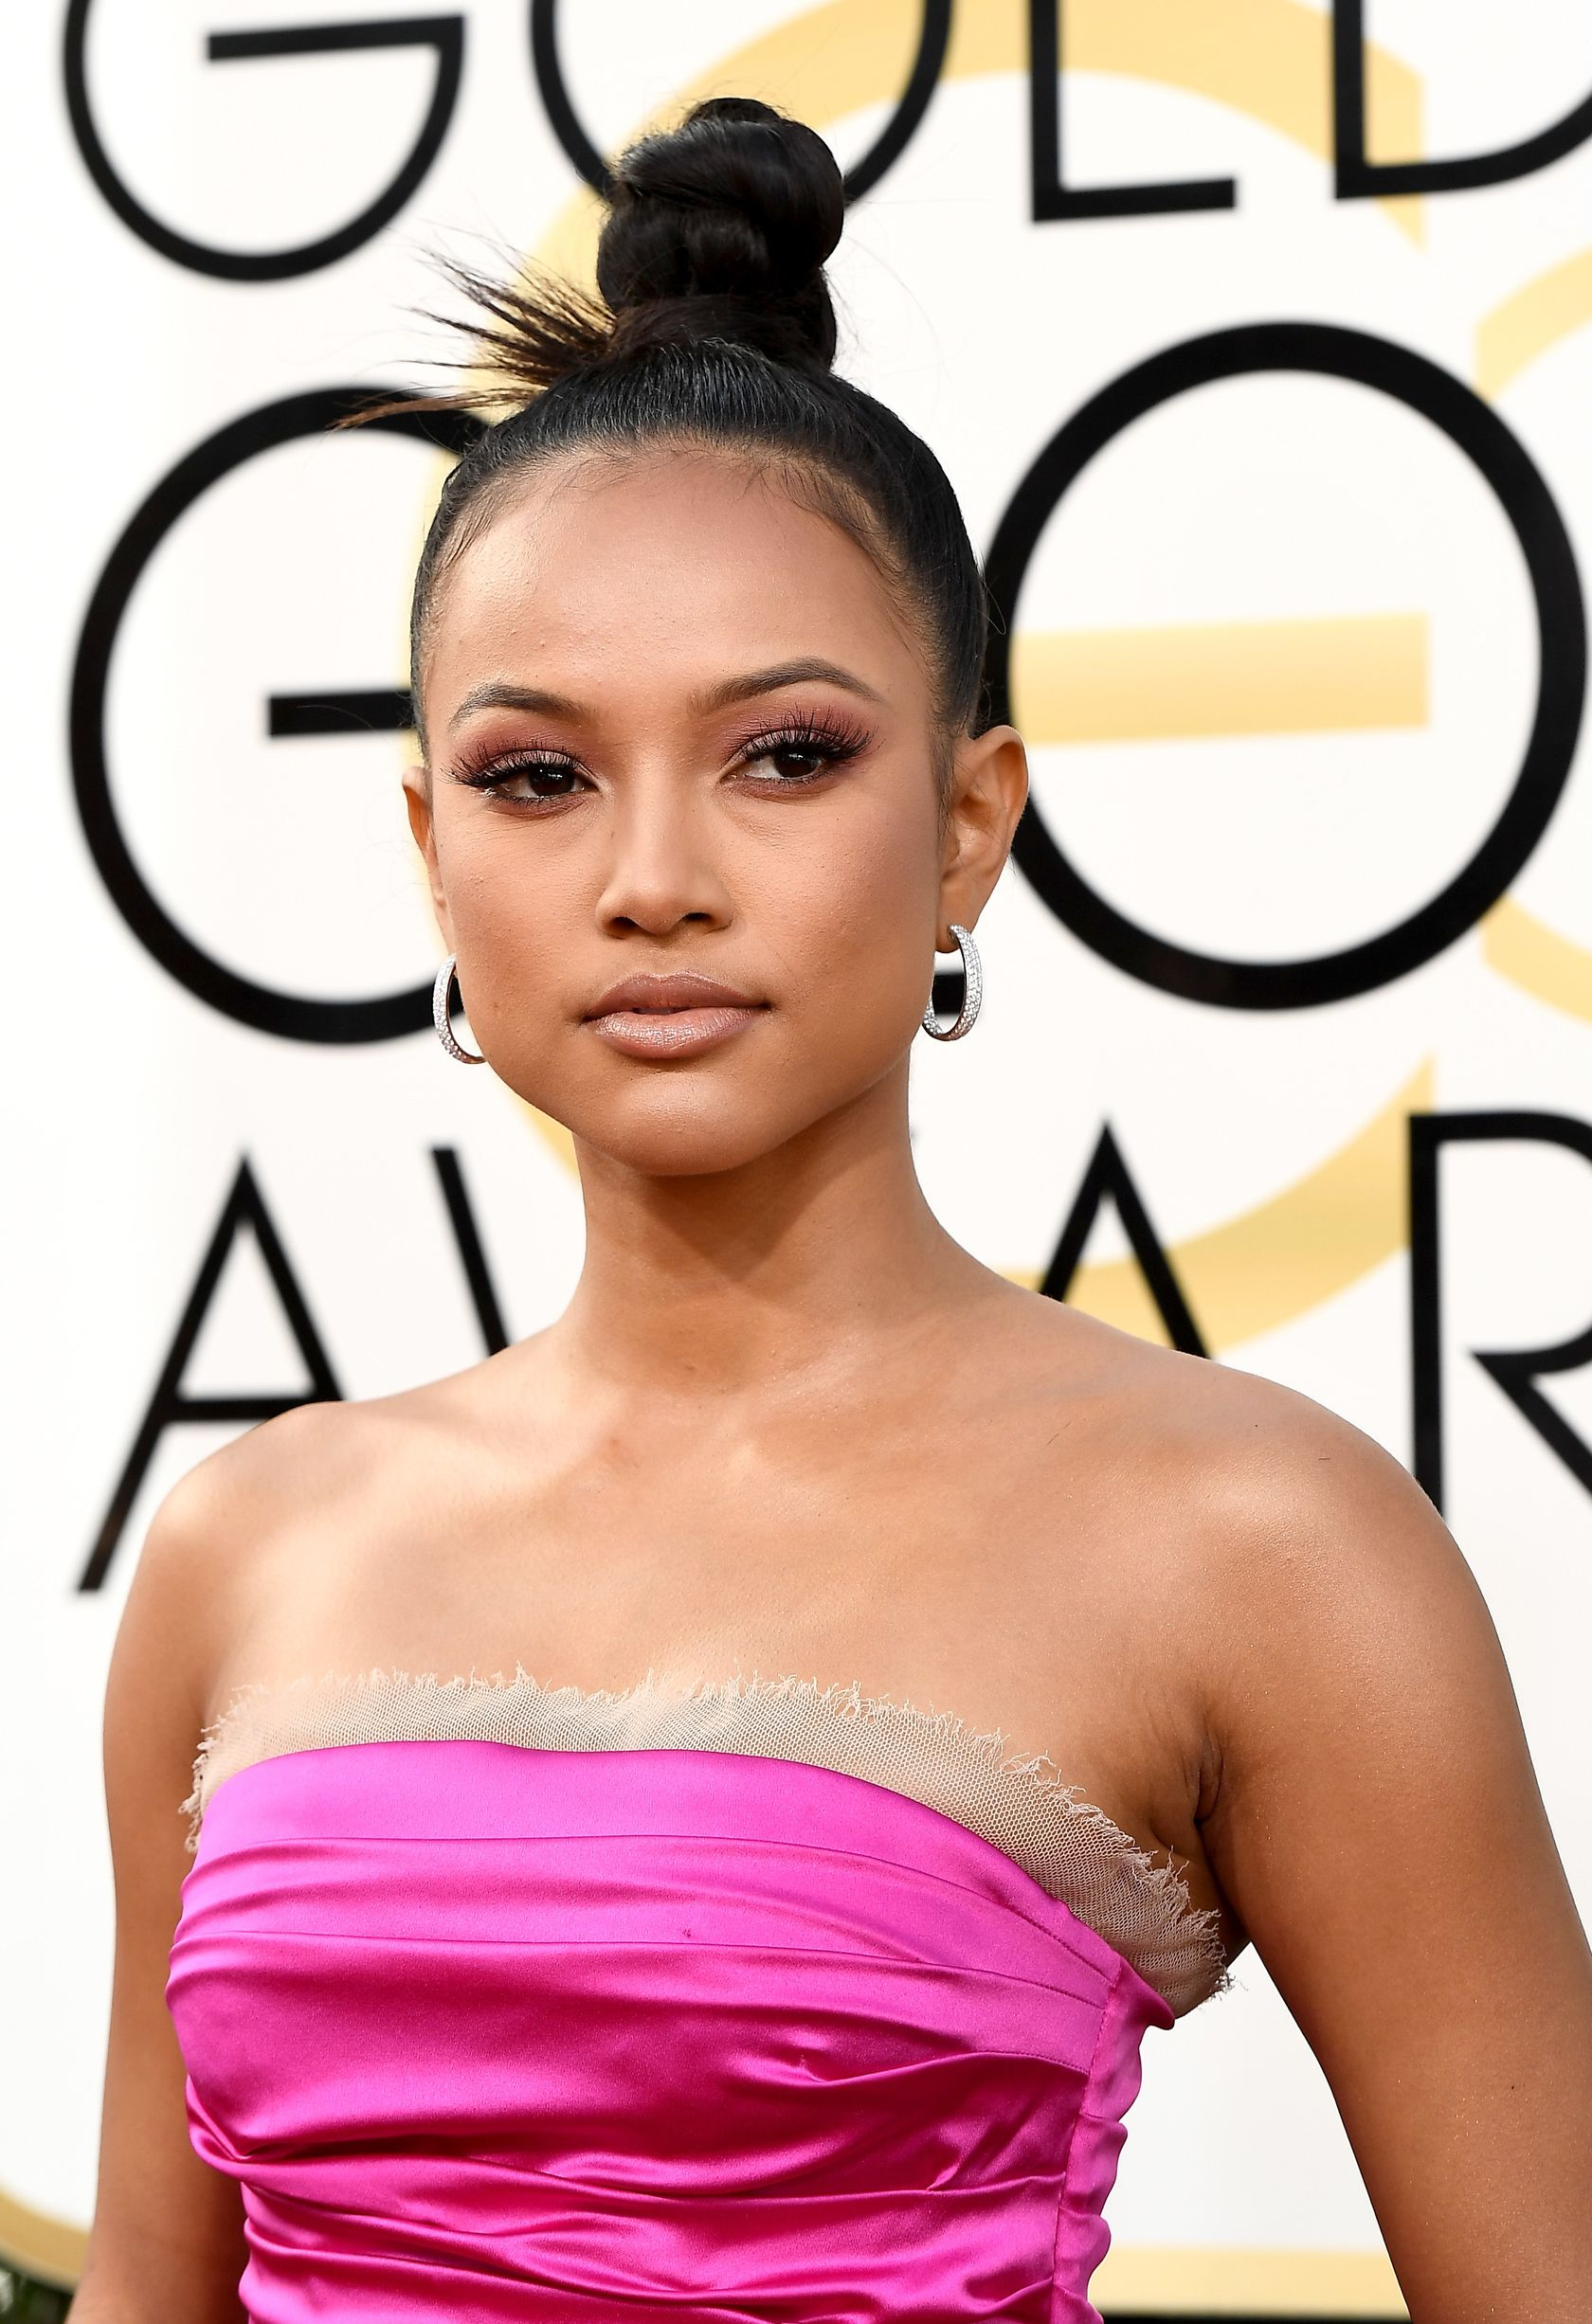 The 30-year old daughter of father Devon Minters and mother Cindy Adamson Karrueche Tran in 2019 photo. Karrueche Tran earned a  million dollar salary - leaving the net worth at 0.9 million in 2019